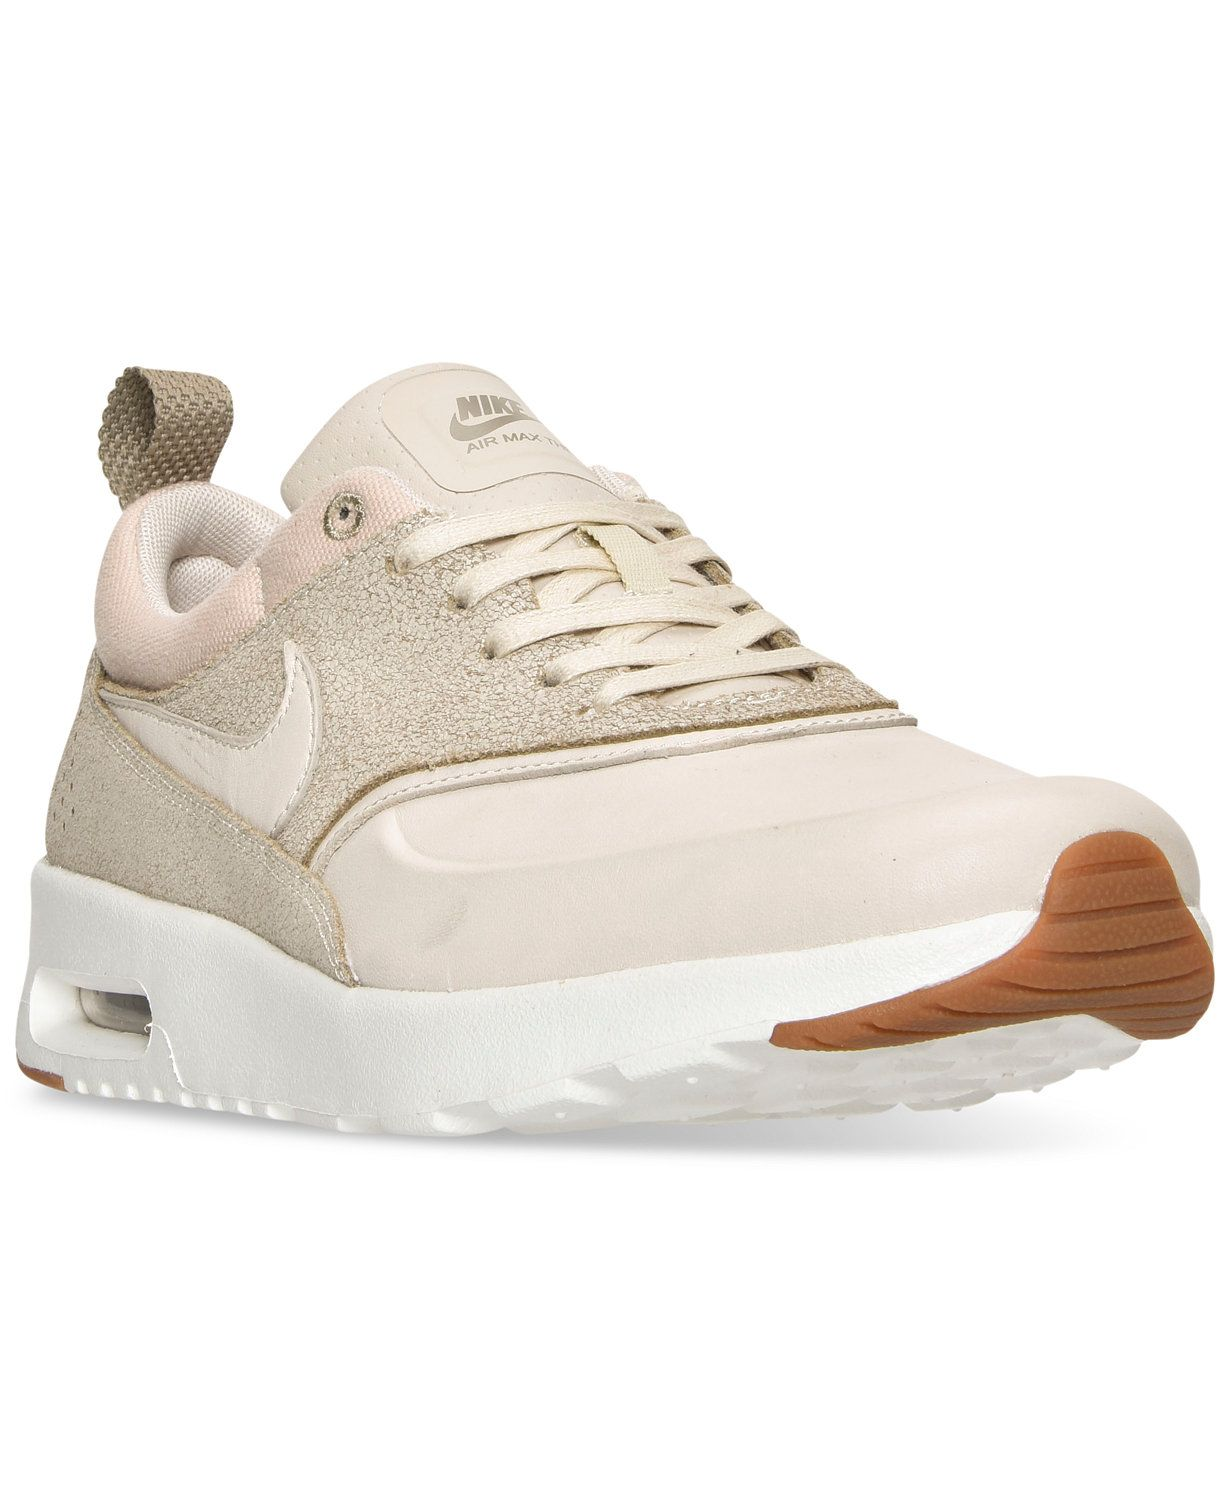 purchase cheap d1a46 e4ddd Nike Women s Air Max Thea Premium Running Sneakers from Finish Line    macys.com